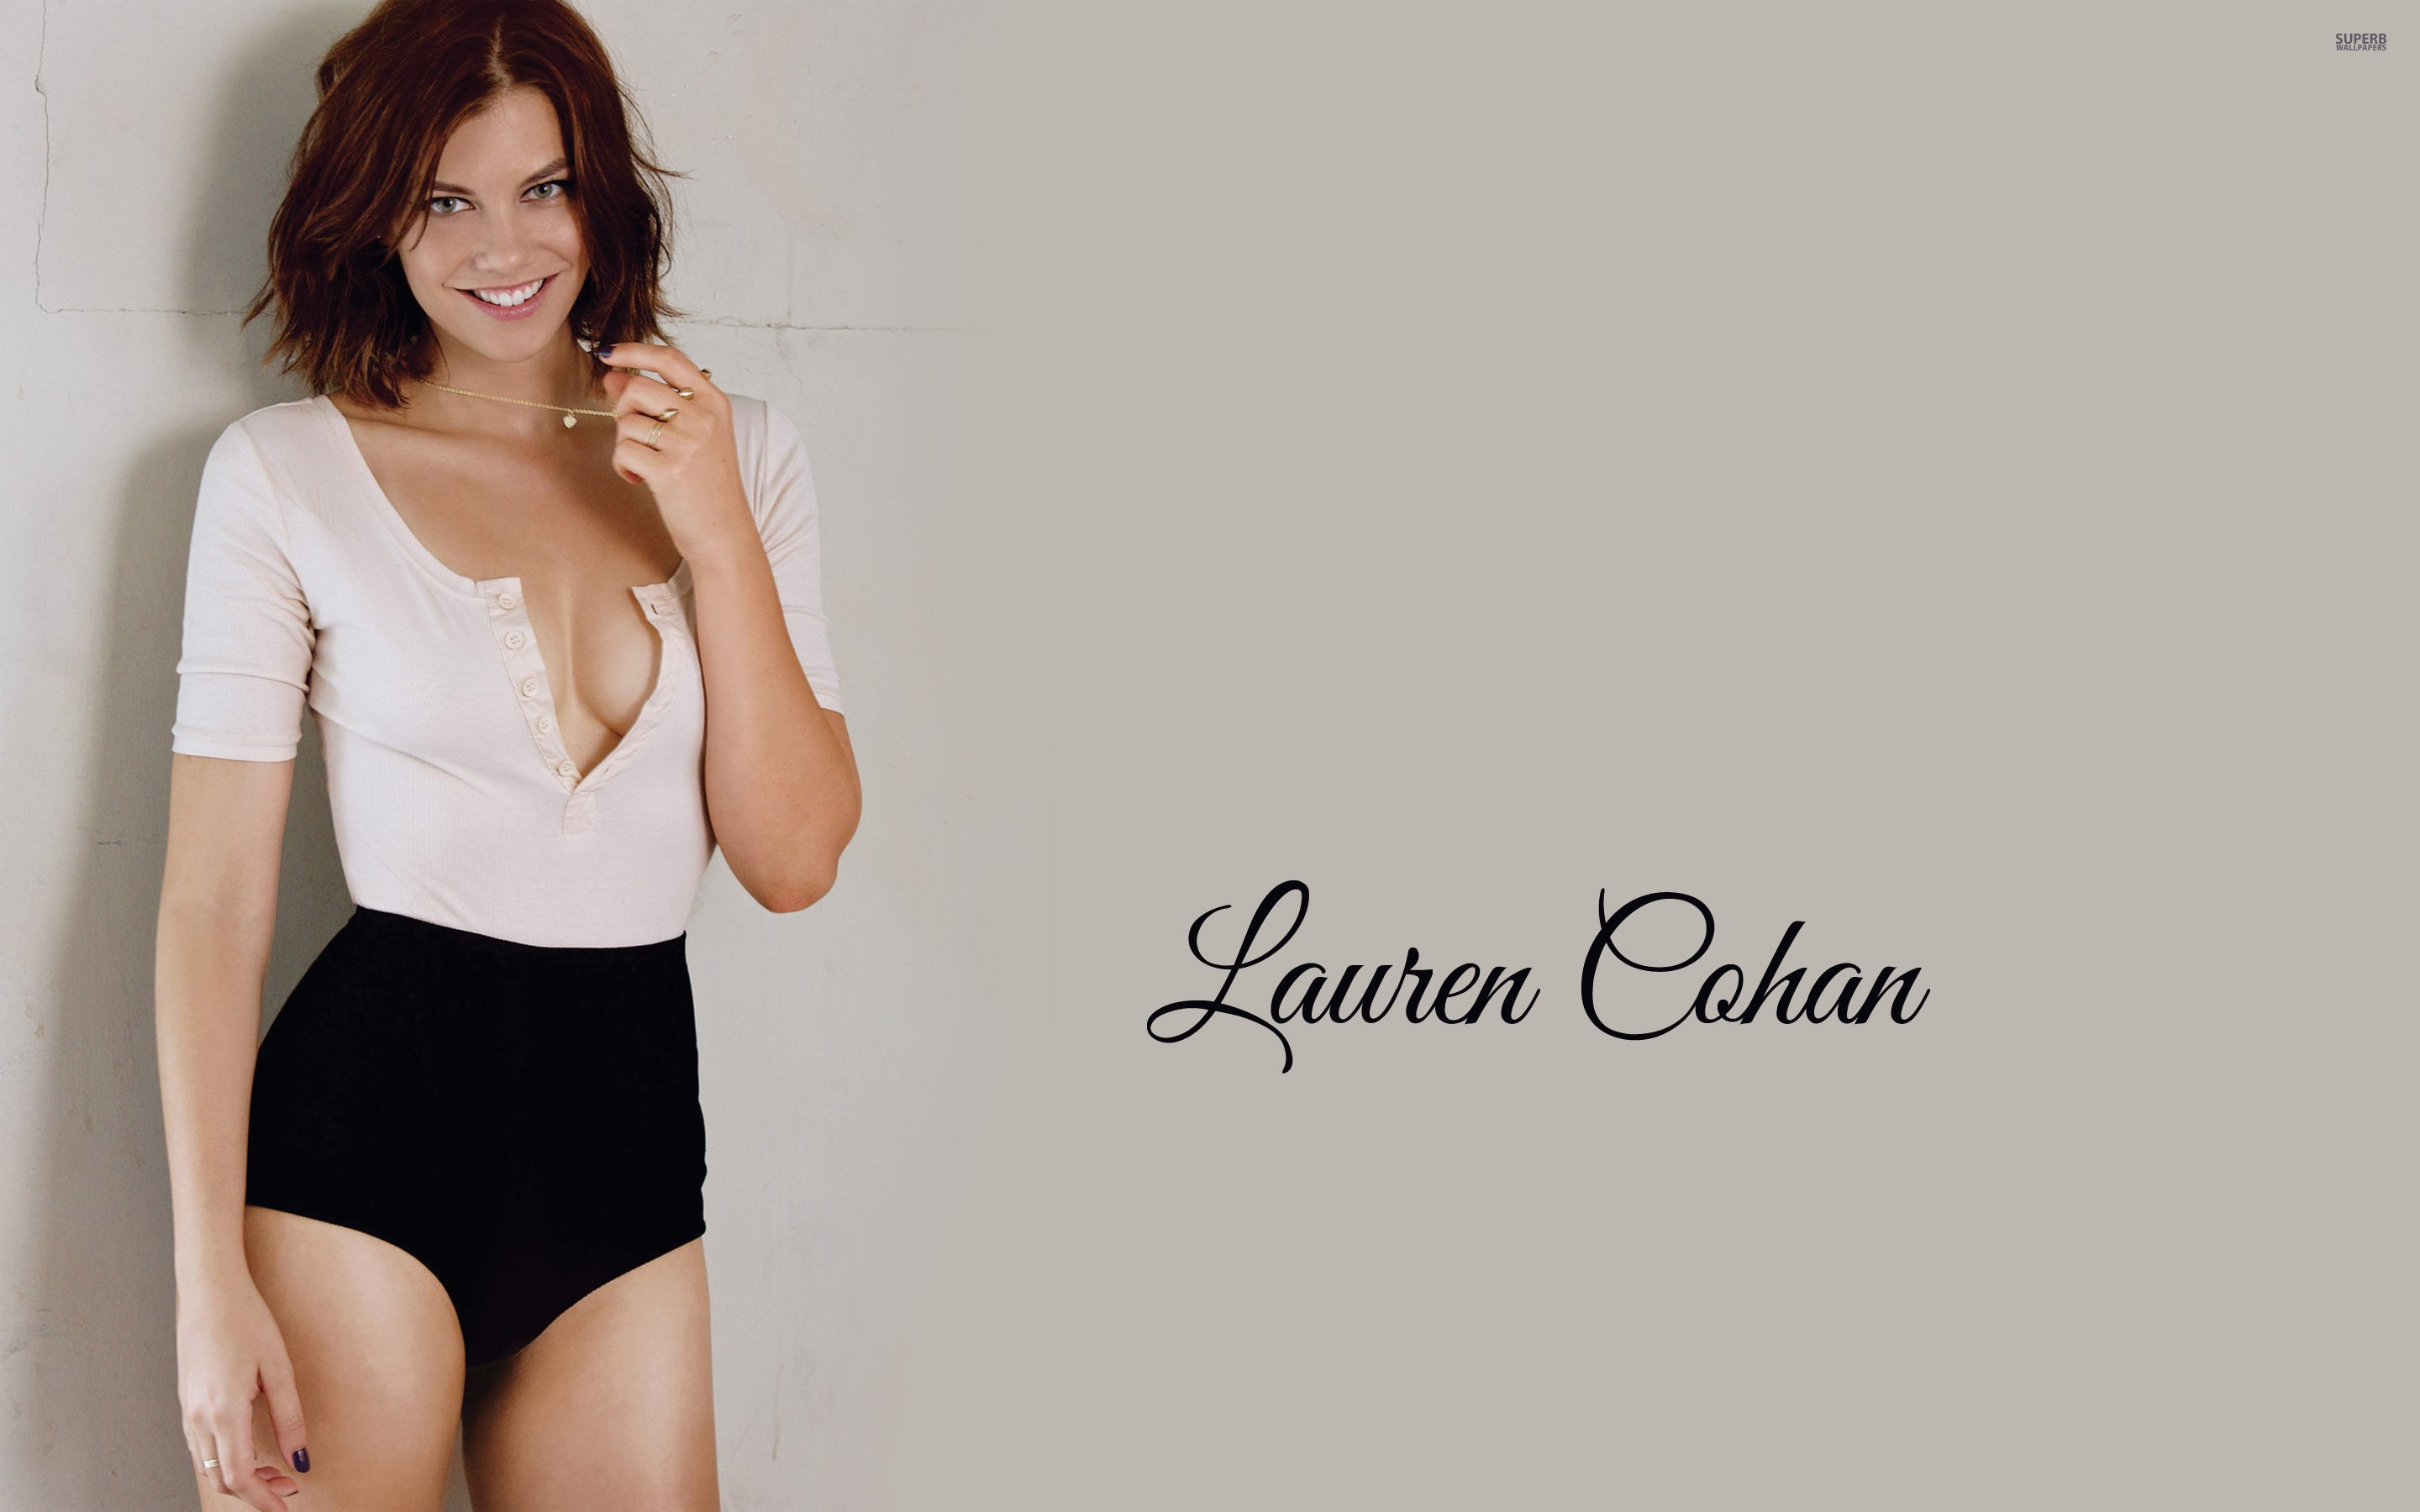 Lauren Cohan wallpaper 2880x1800 jpg